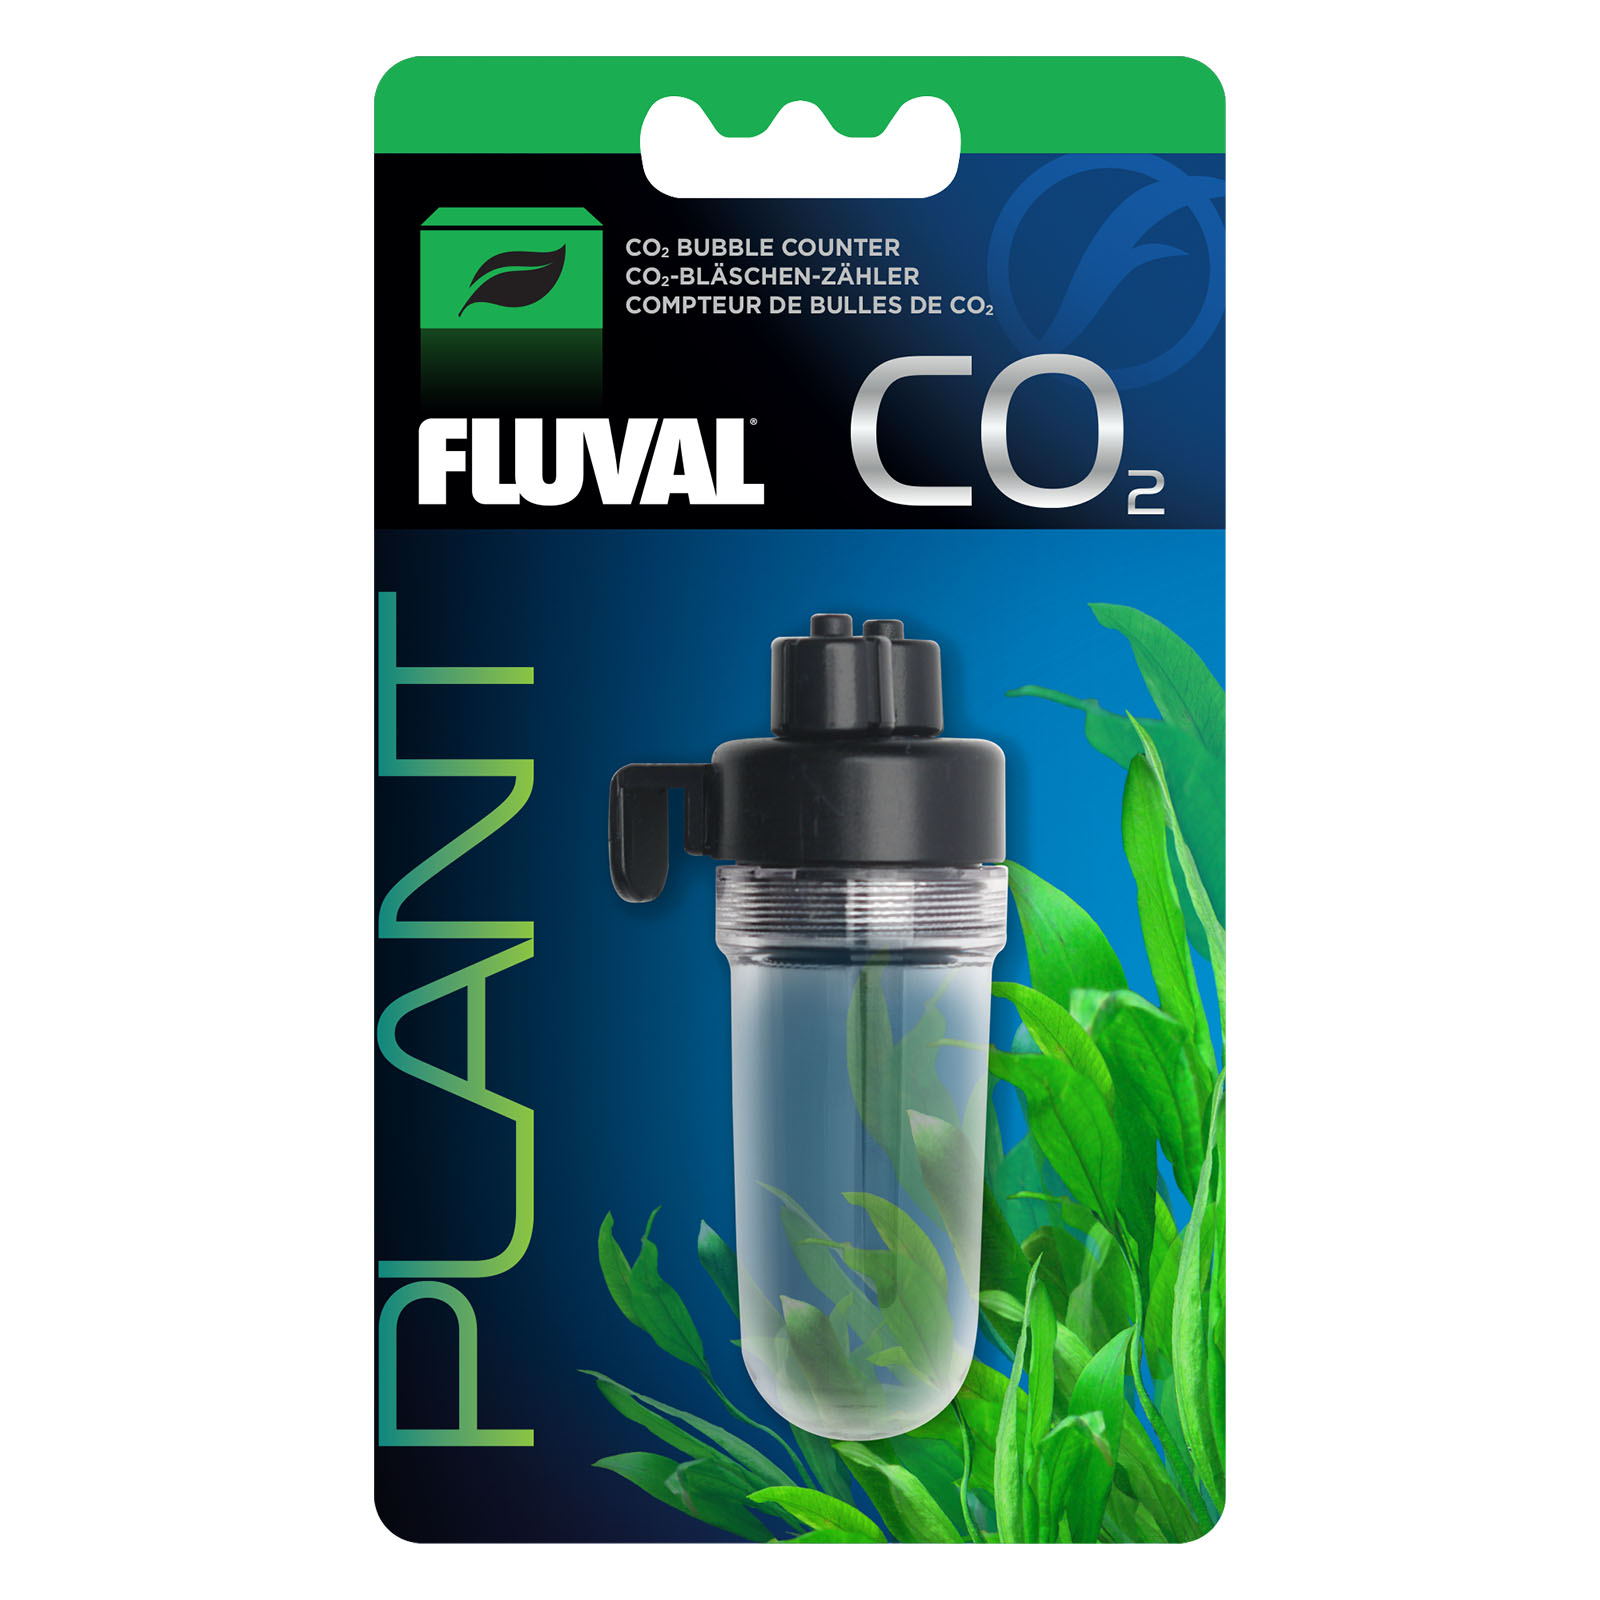 Pet Supplies Fluval Co2 Kit Co2 Equipment Ideal Gift For All Occasions